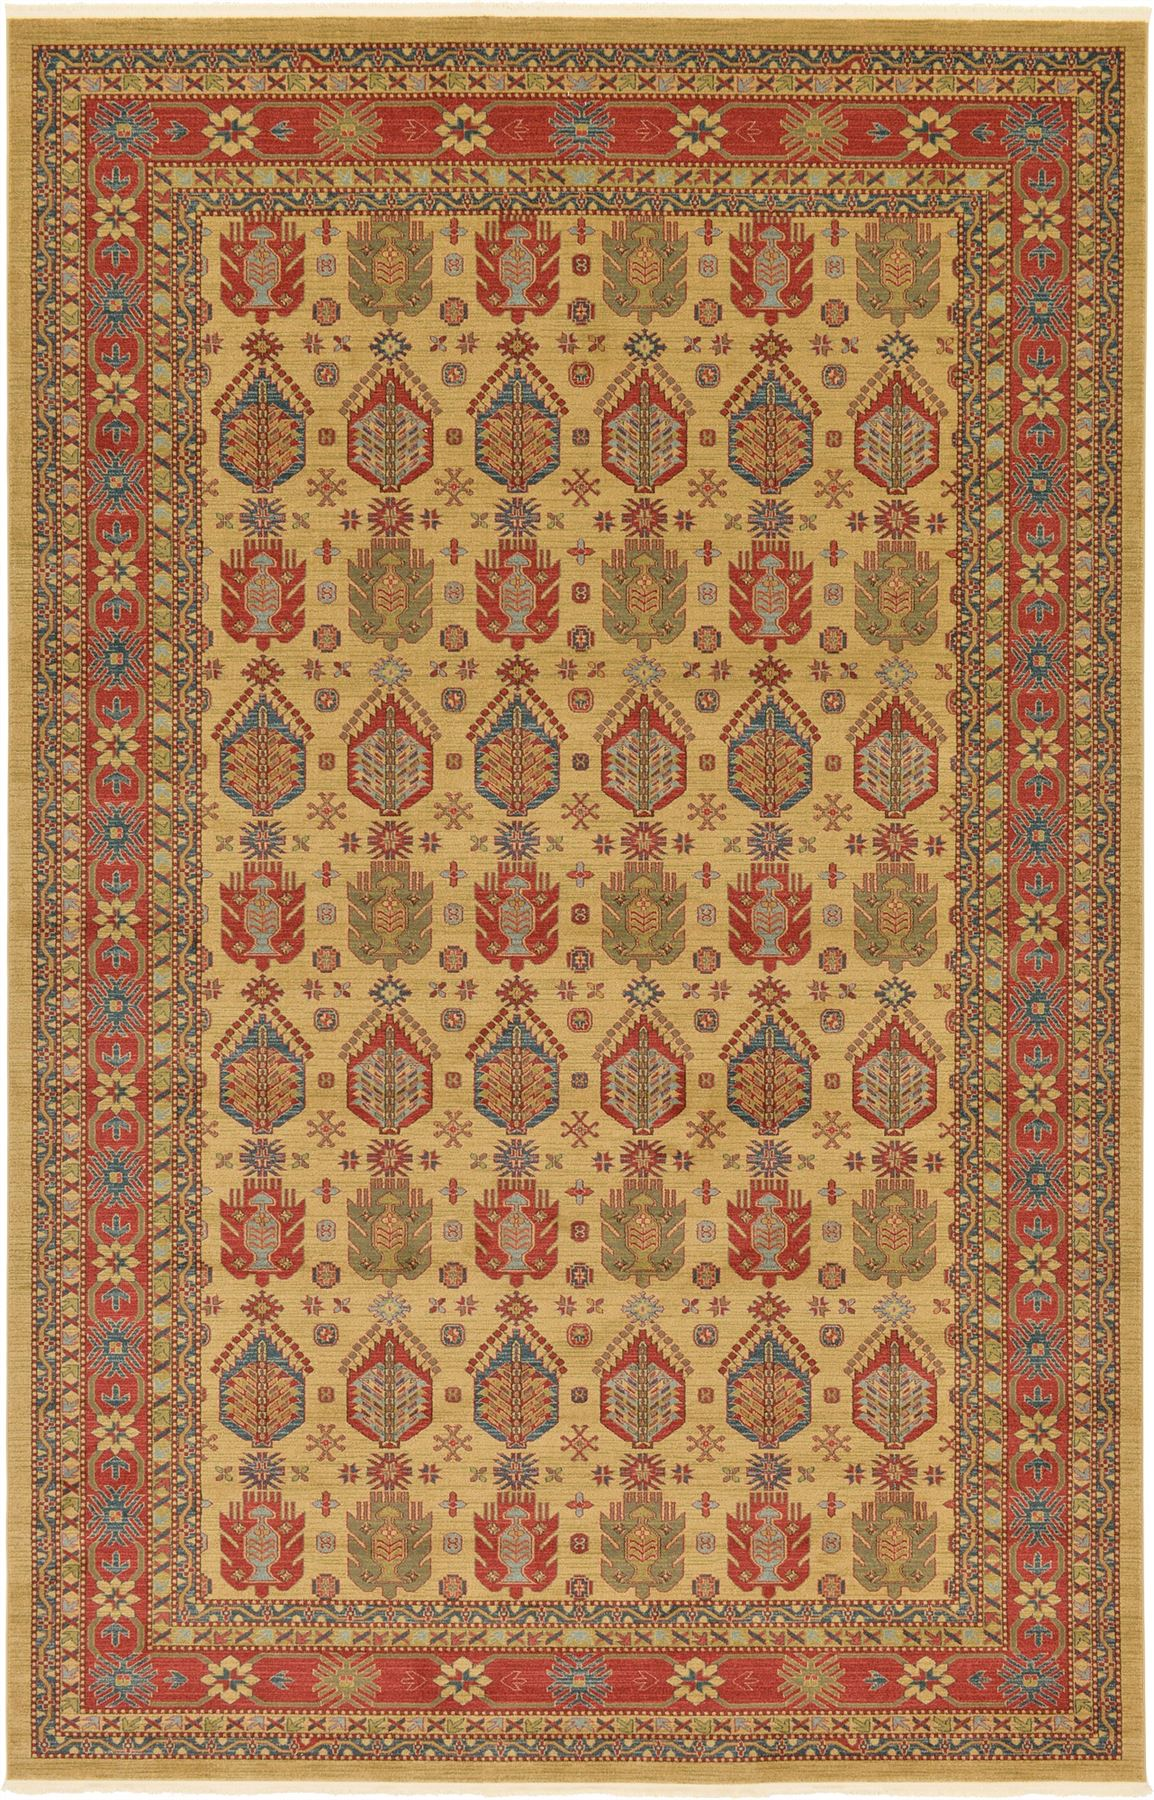 Heriz Design Rug Traditional Persian Style Rugs Clasic